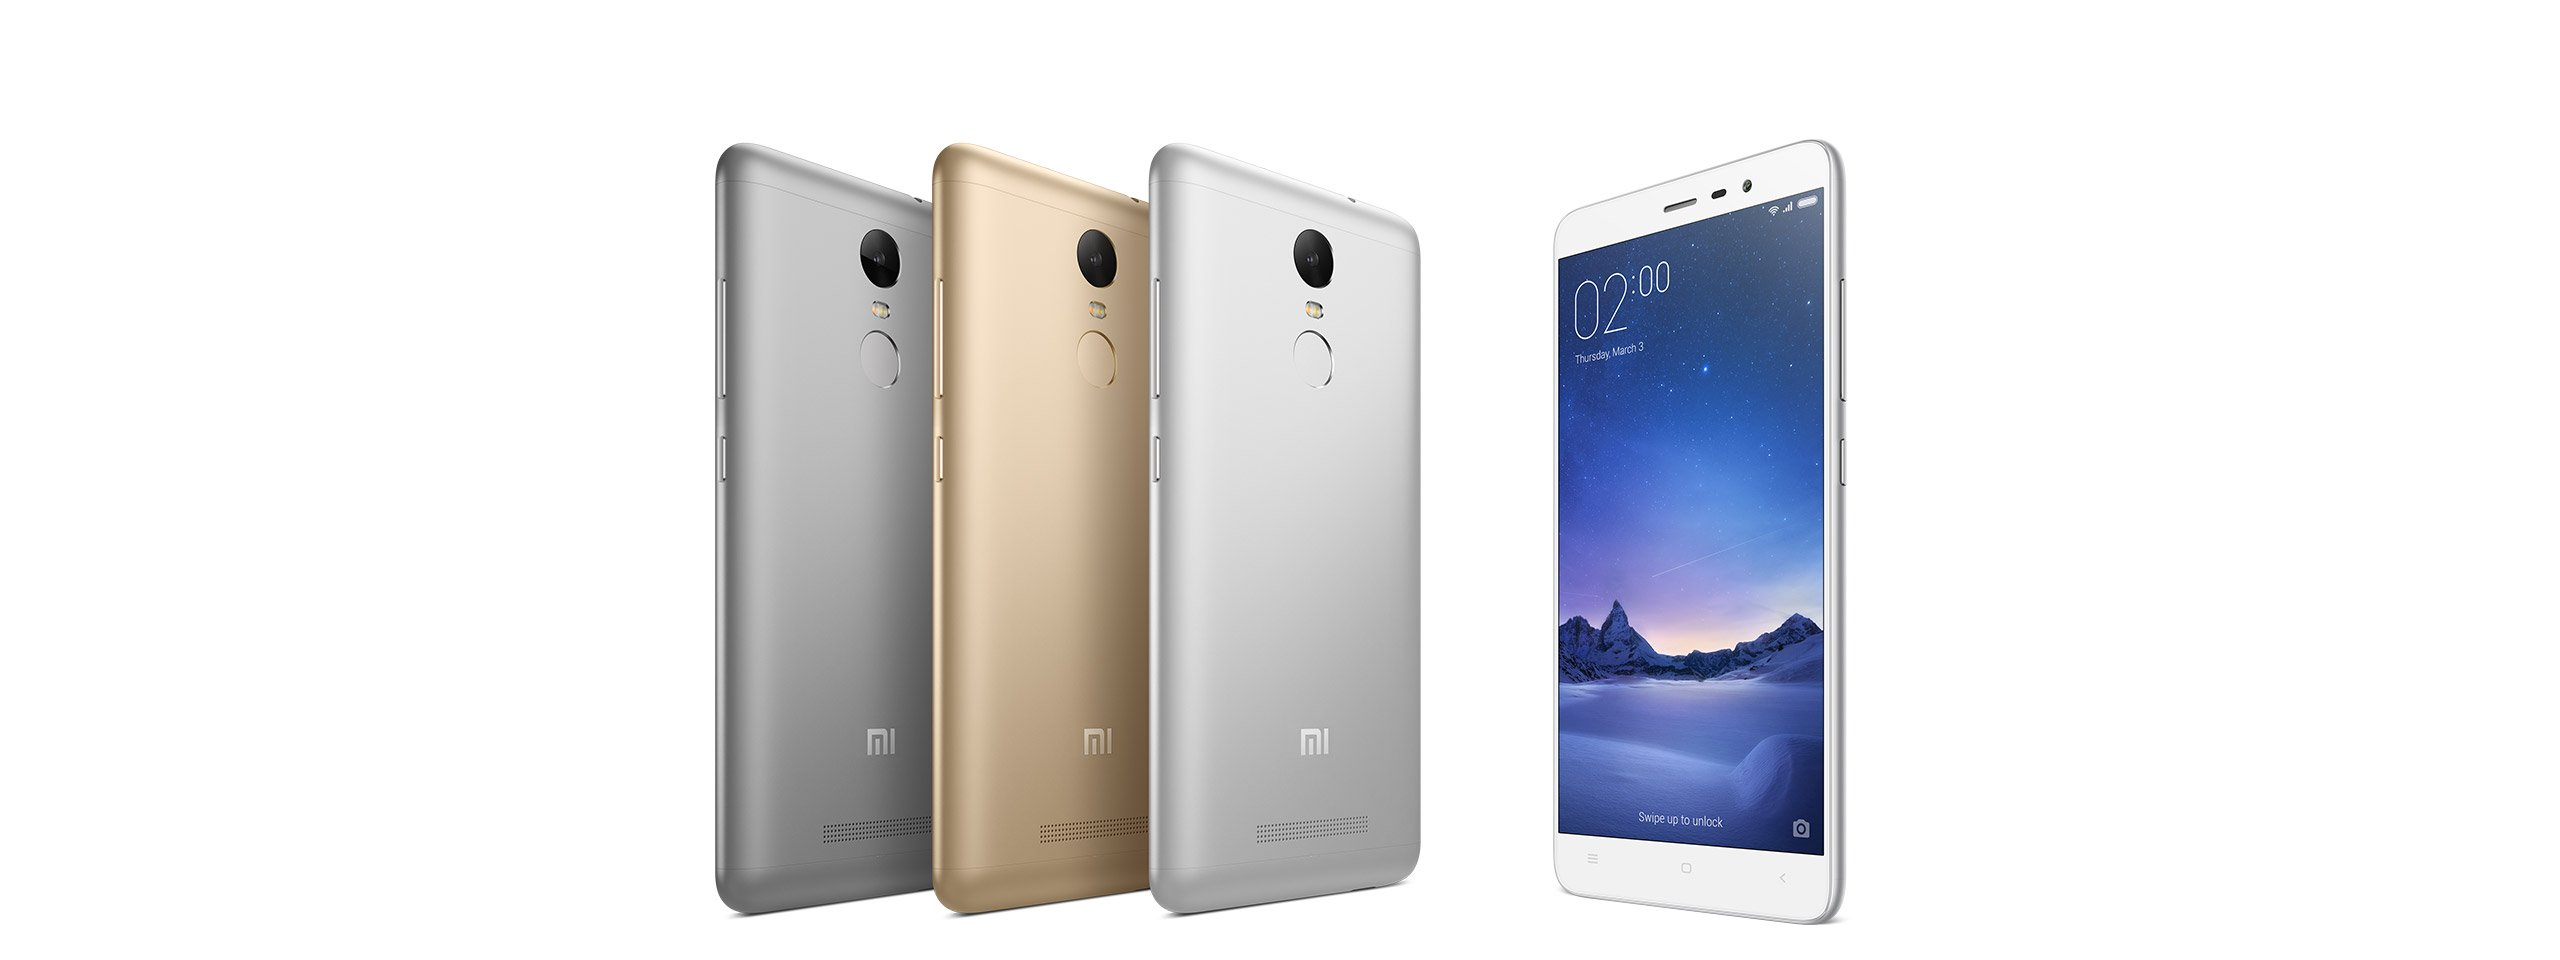 Xiaomi Redmi Note 3 [19,730.00 tk] : Price